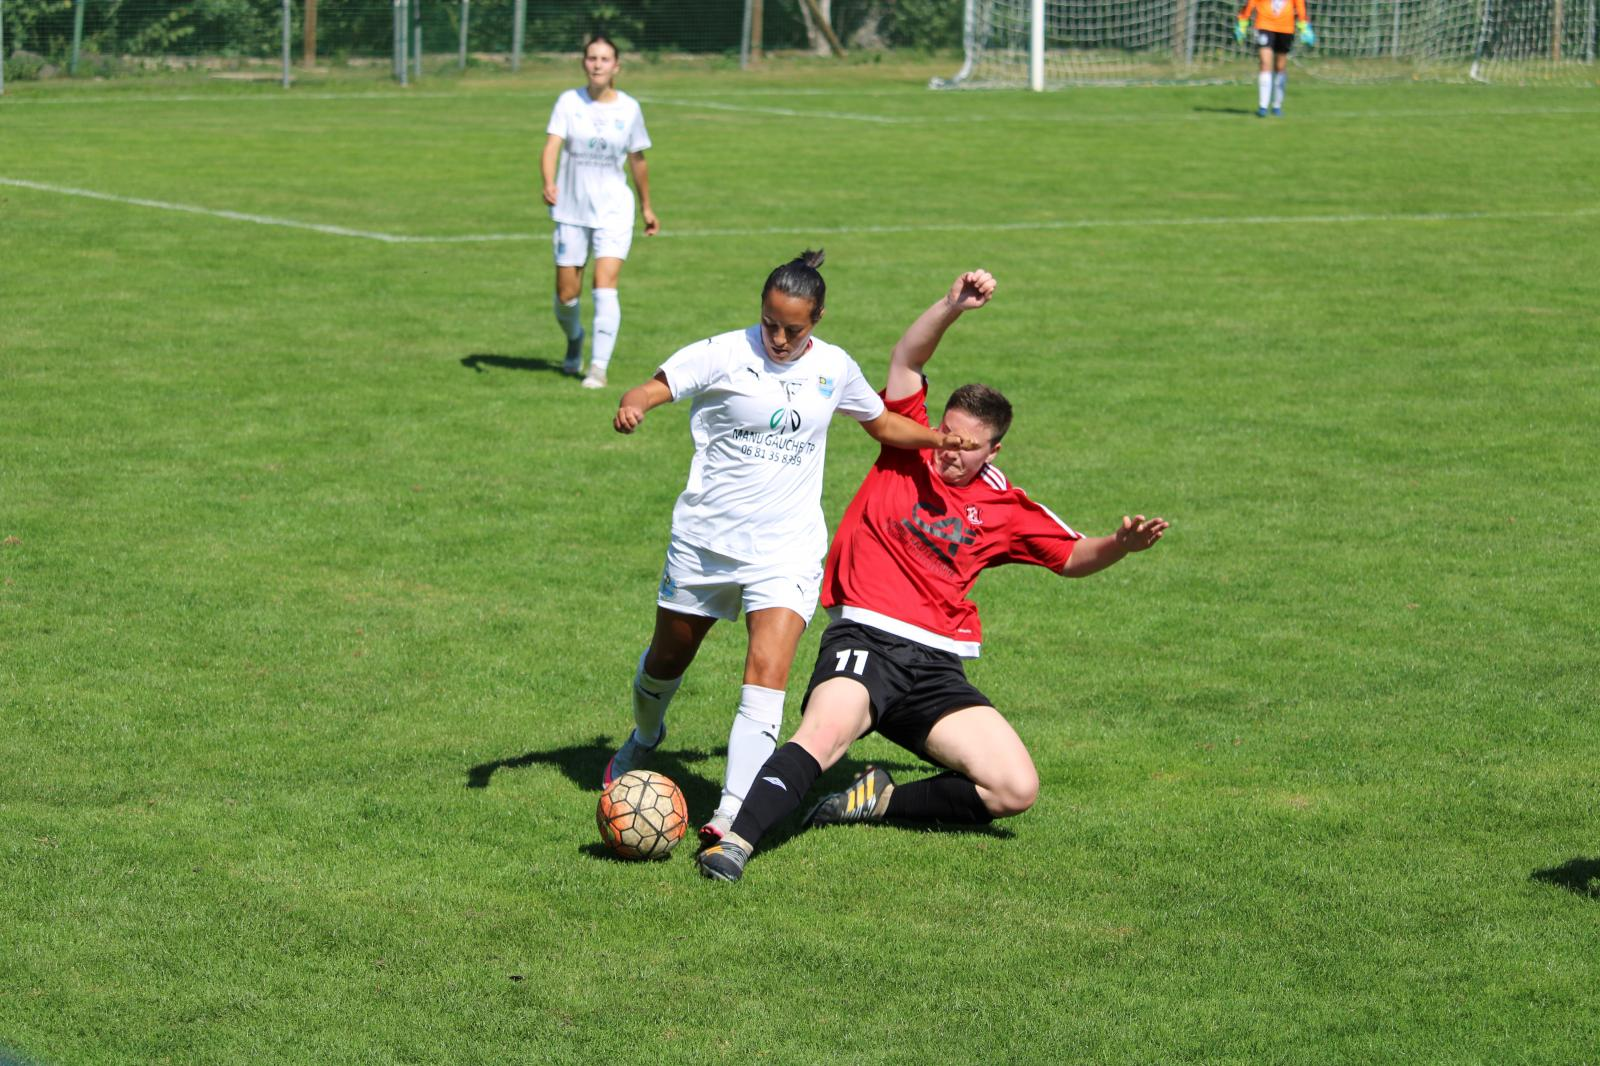 Match amical Séniors F contre Saint Julien Chapteuil